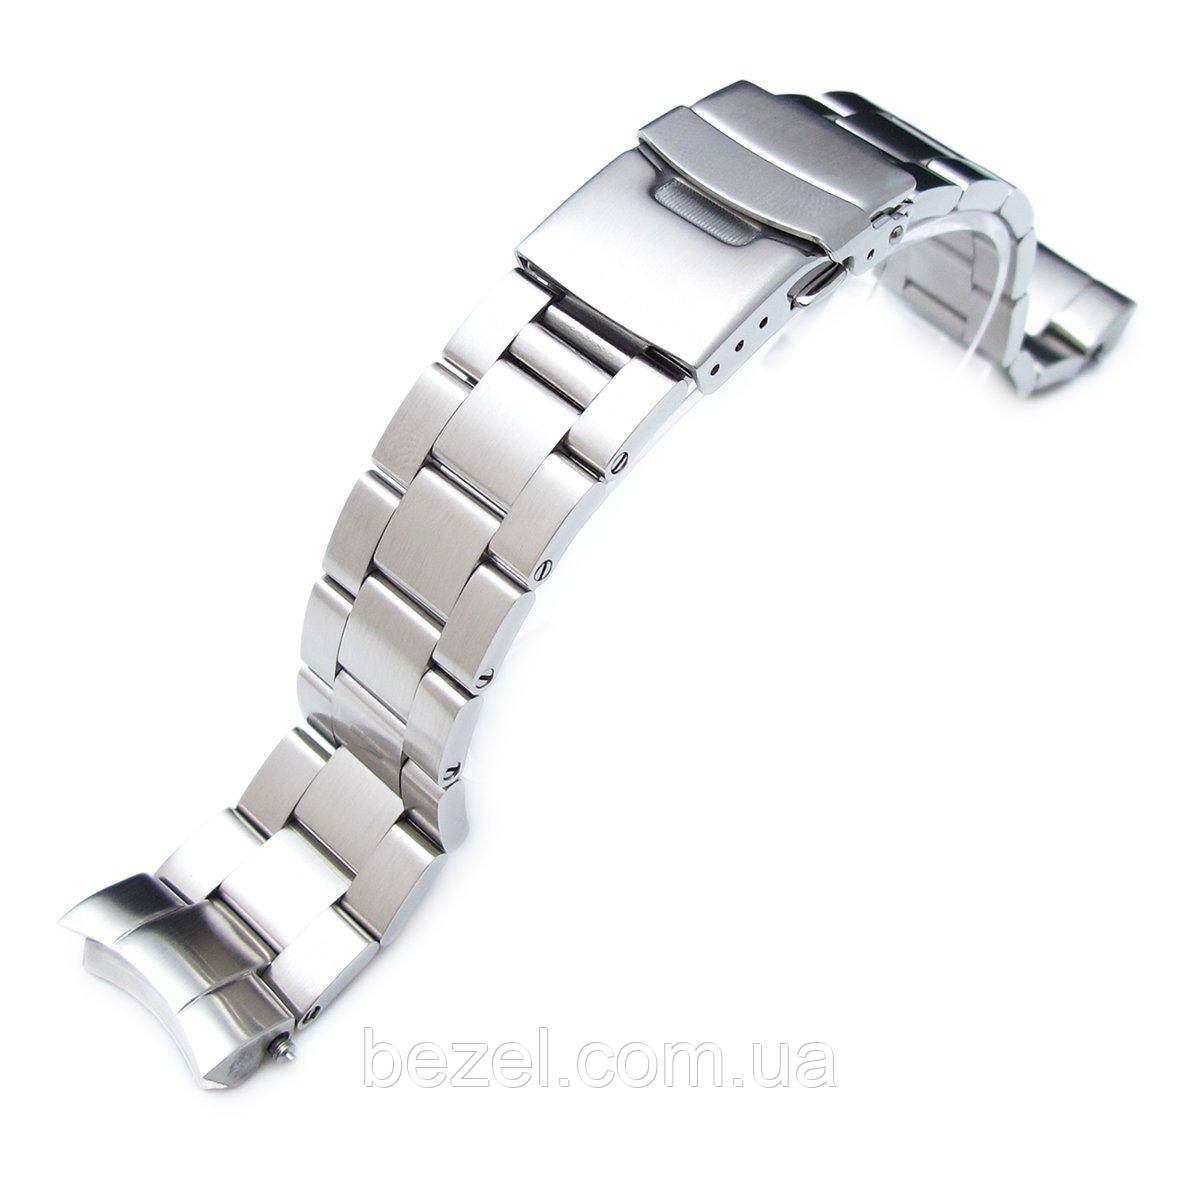 20mm Super Oyster Watch Band for SEIKO Sumo SBDC001, SBDC003, SBDC005, SBDC031, SBDC033